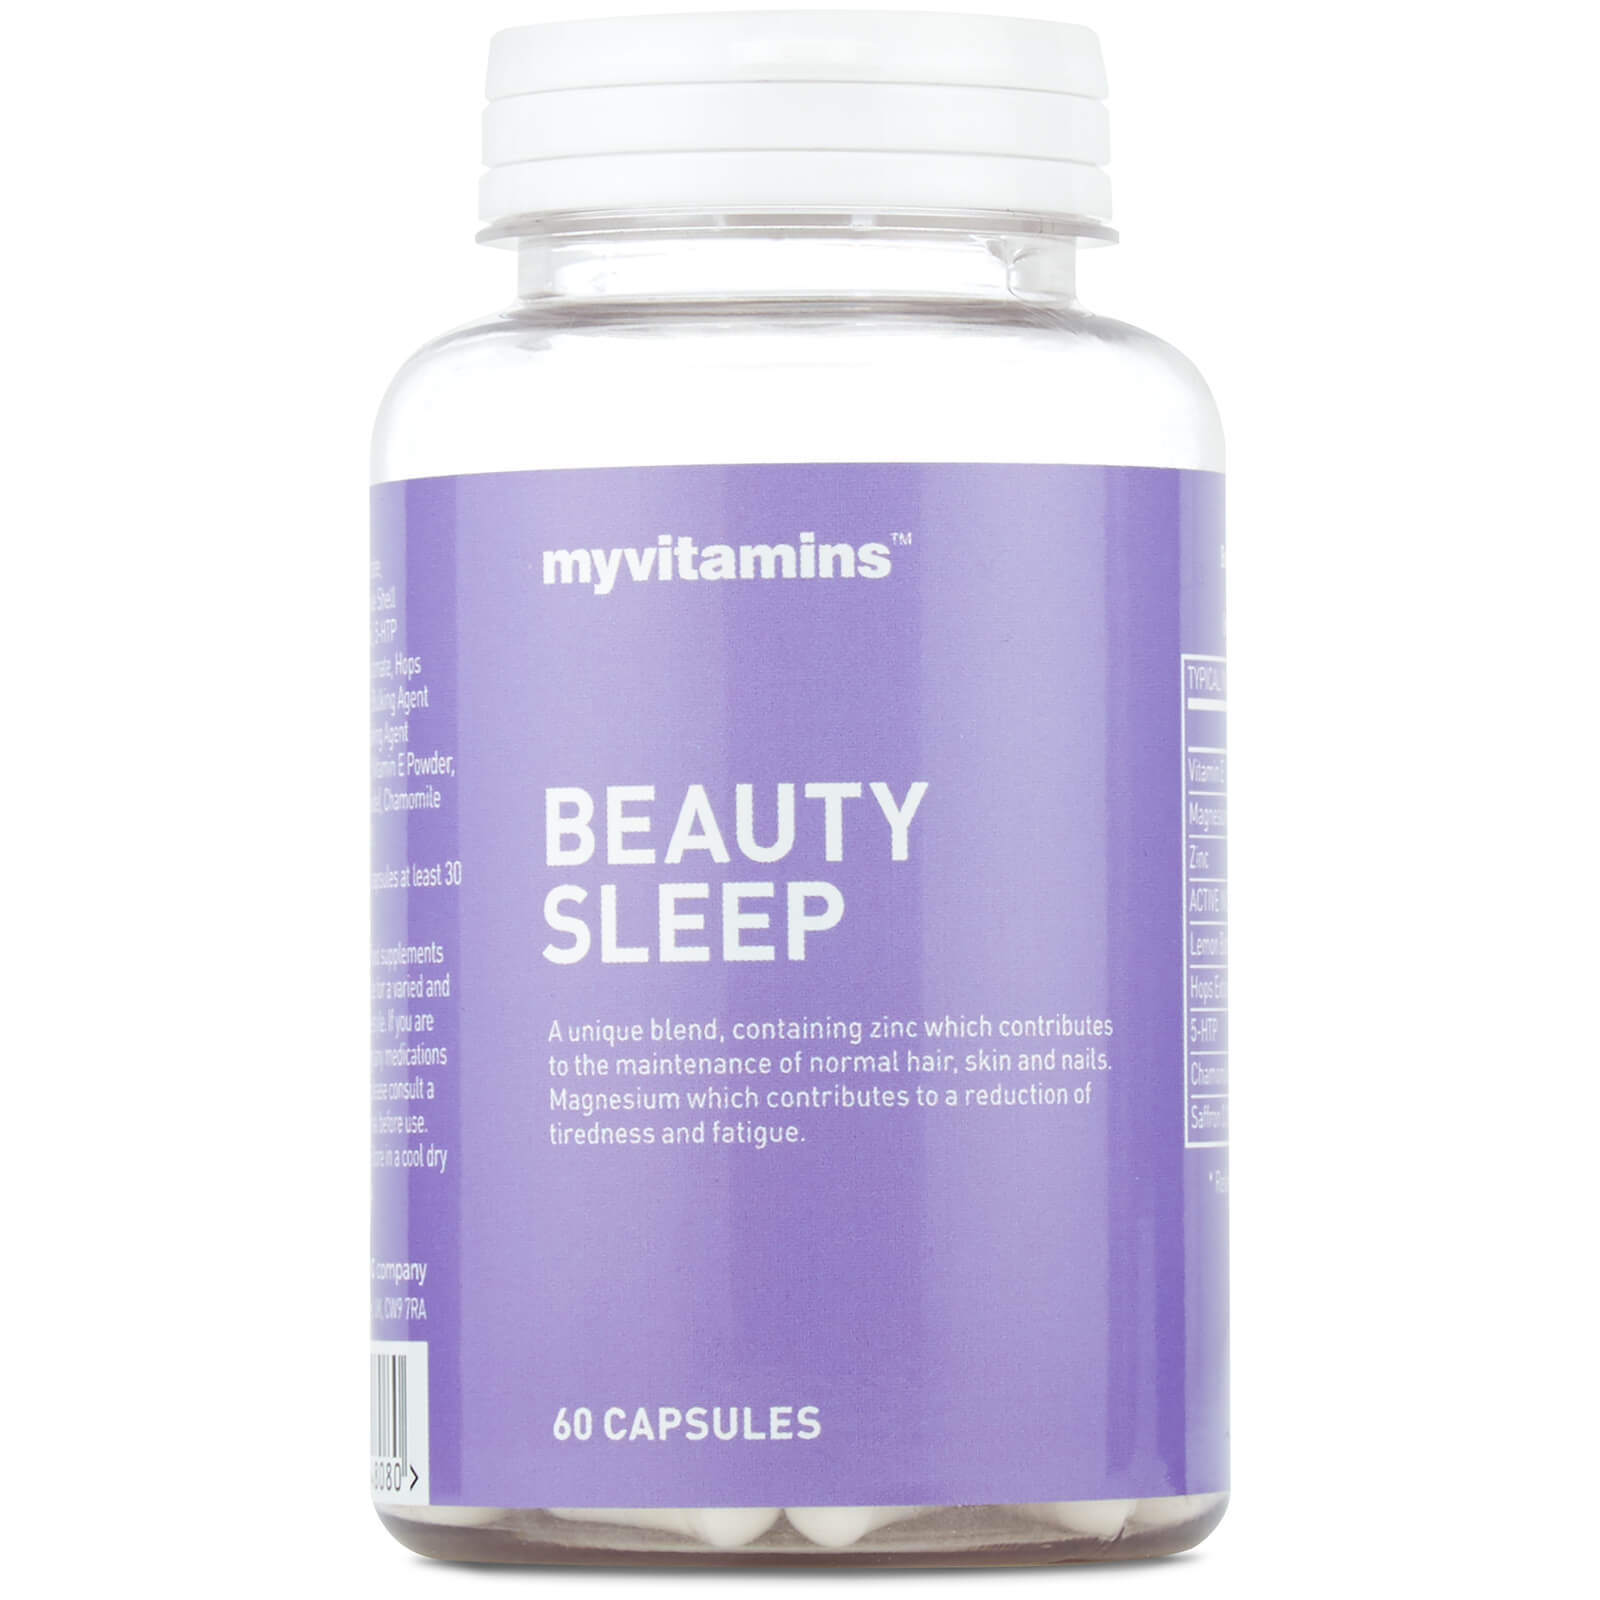 Myvitamins Beauty Sleep , 60 Capsules